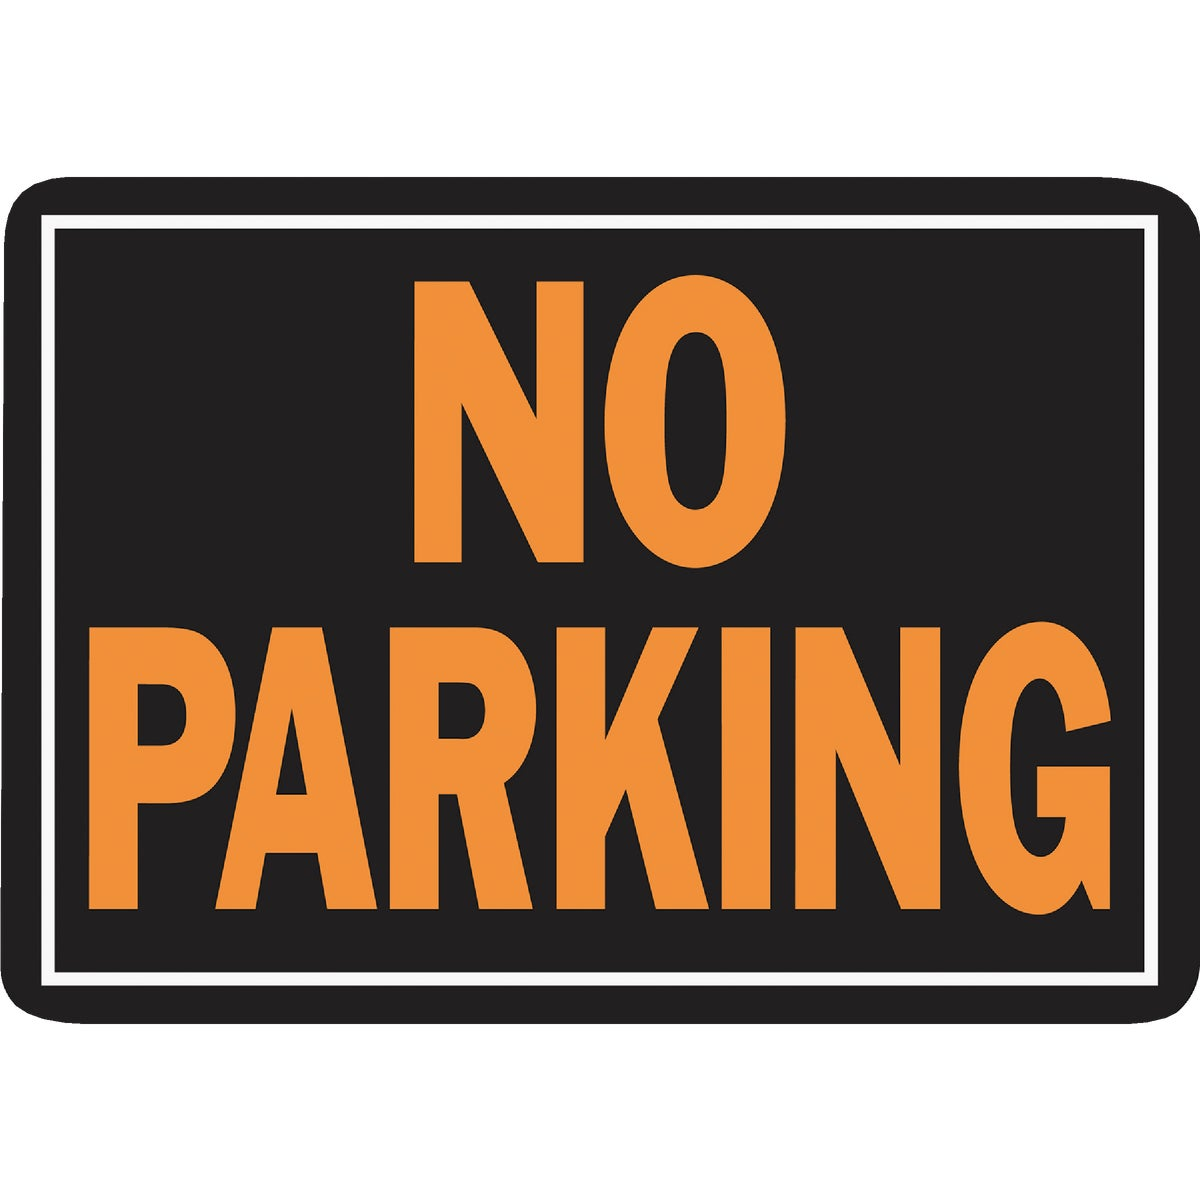 10X14 NO PARKING SIGN - 805 by Hy Ko Prods Co